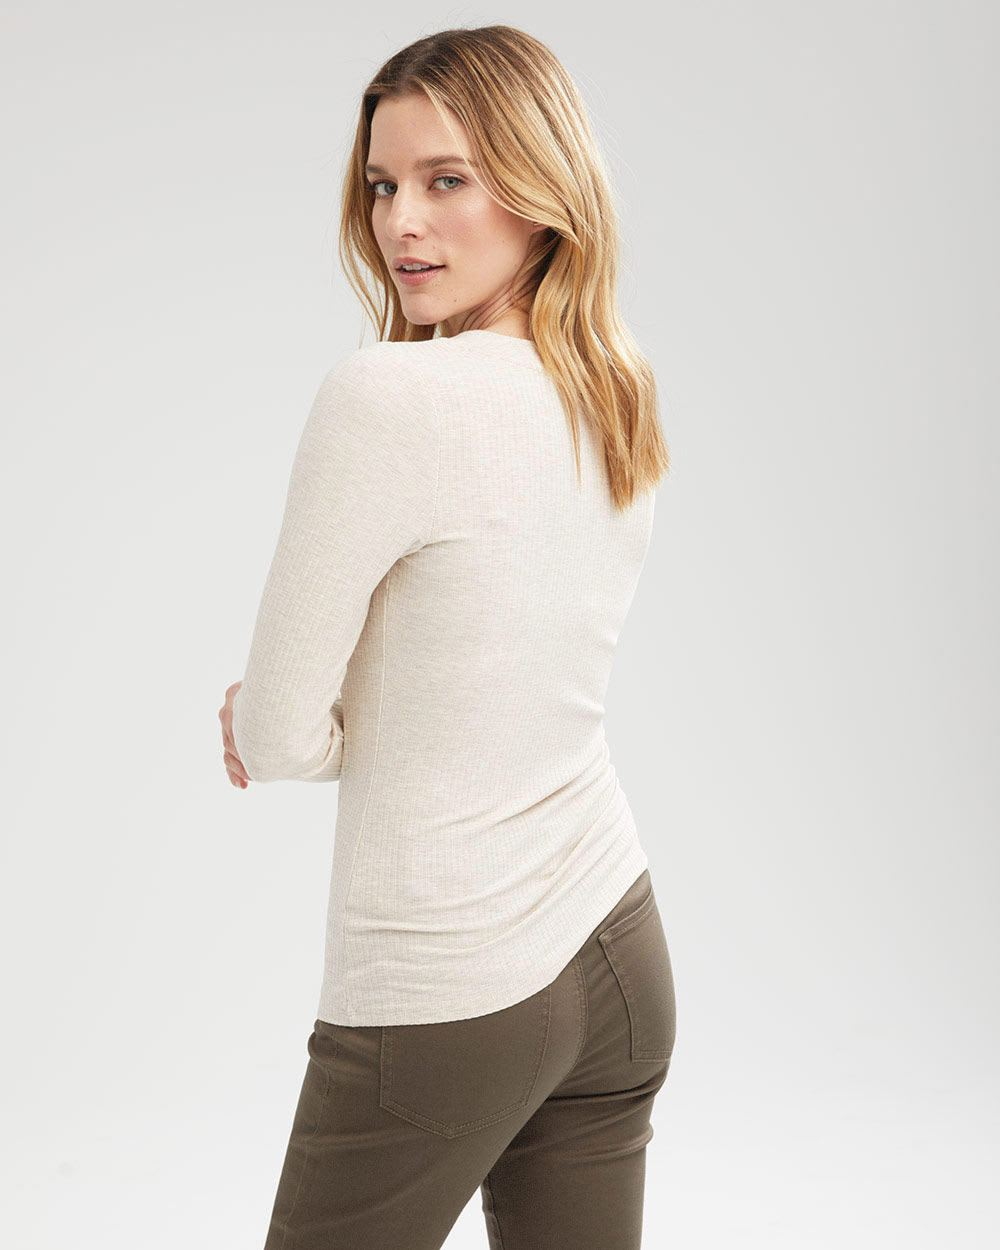 Long Sleeve Ribbed Buttoned Henley Top